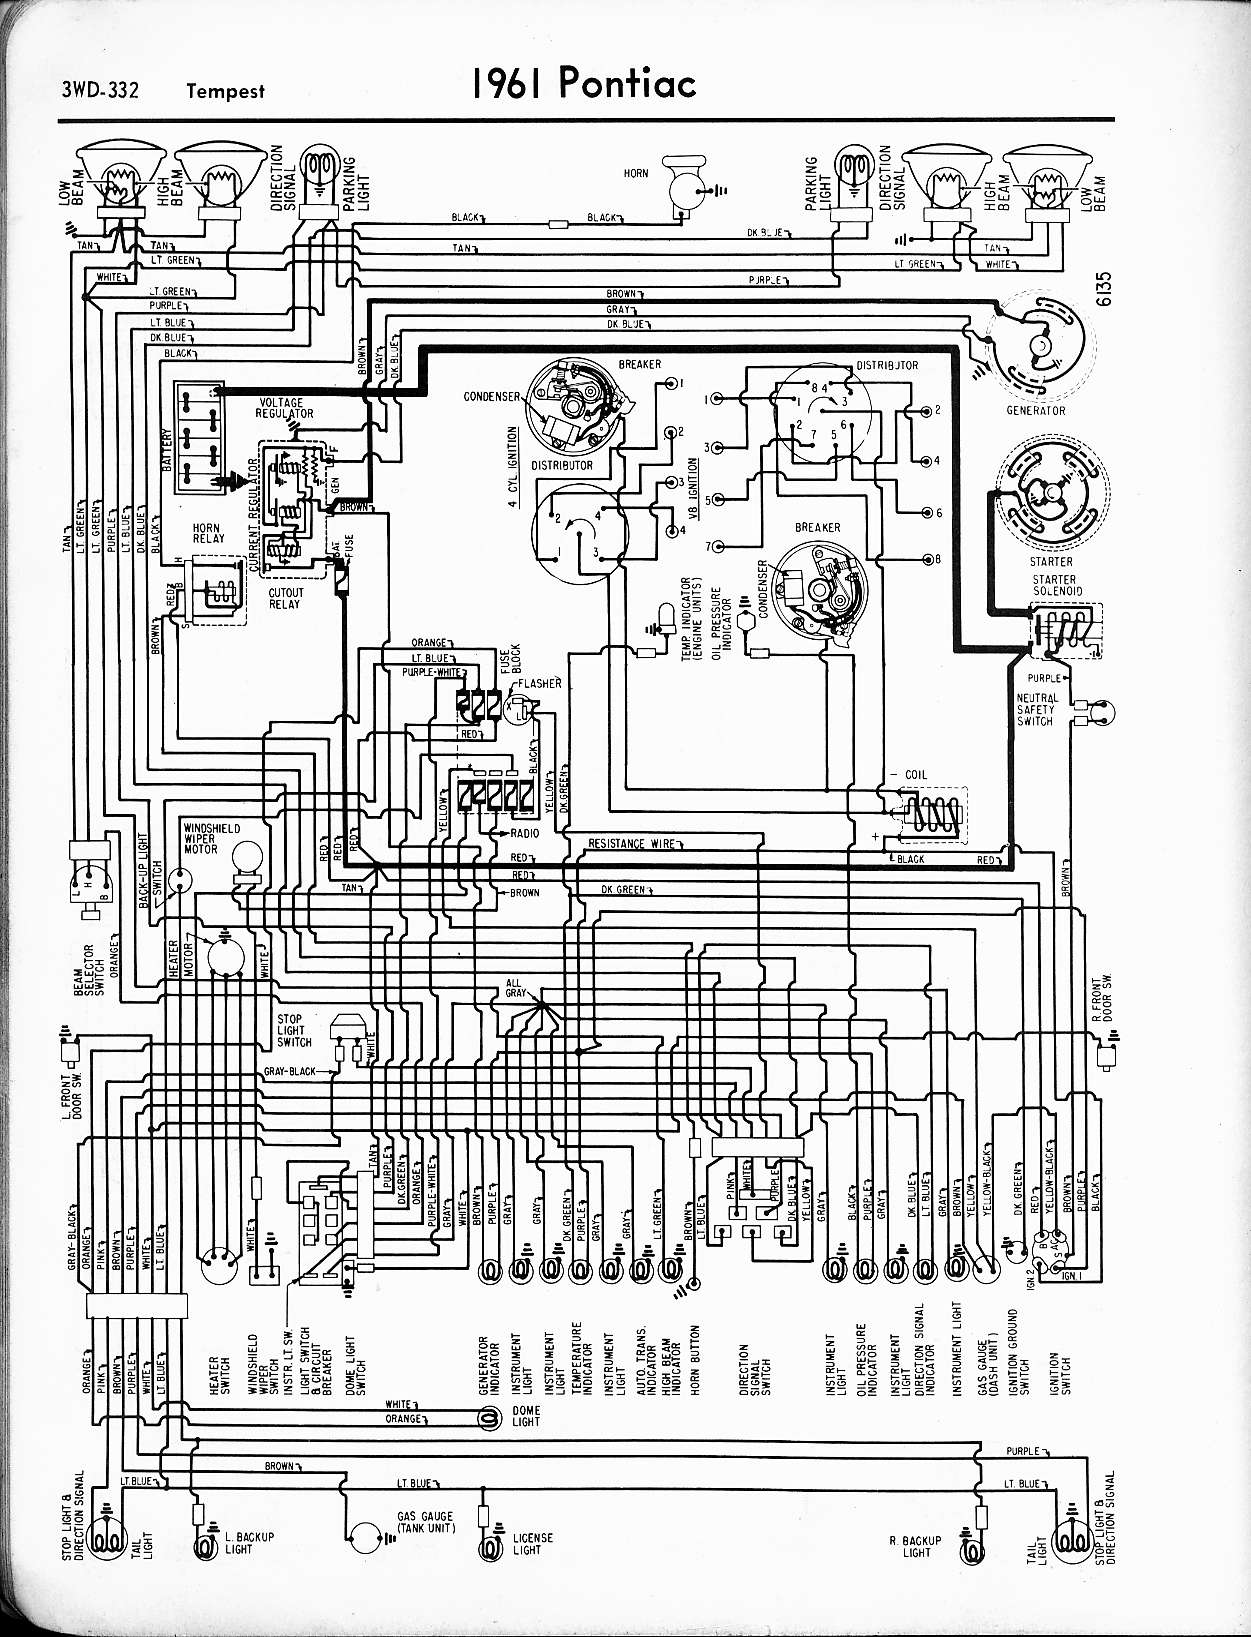 1969 gto wiring harness data wiring diagram schematic 66 GTO Wiring-Diagram 1969 gto best wiring harness wiring diagram 1969 camaro ss 1969 gto wiring harness